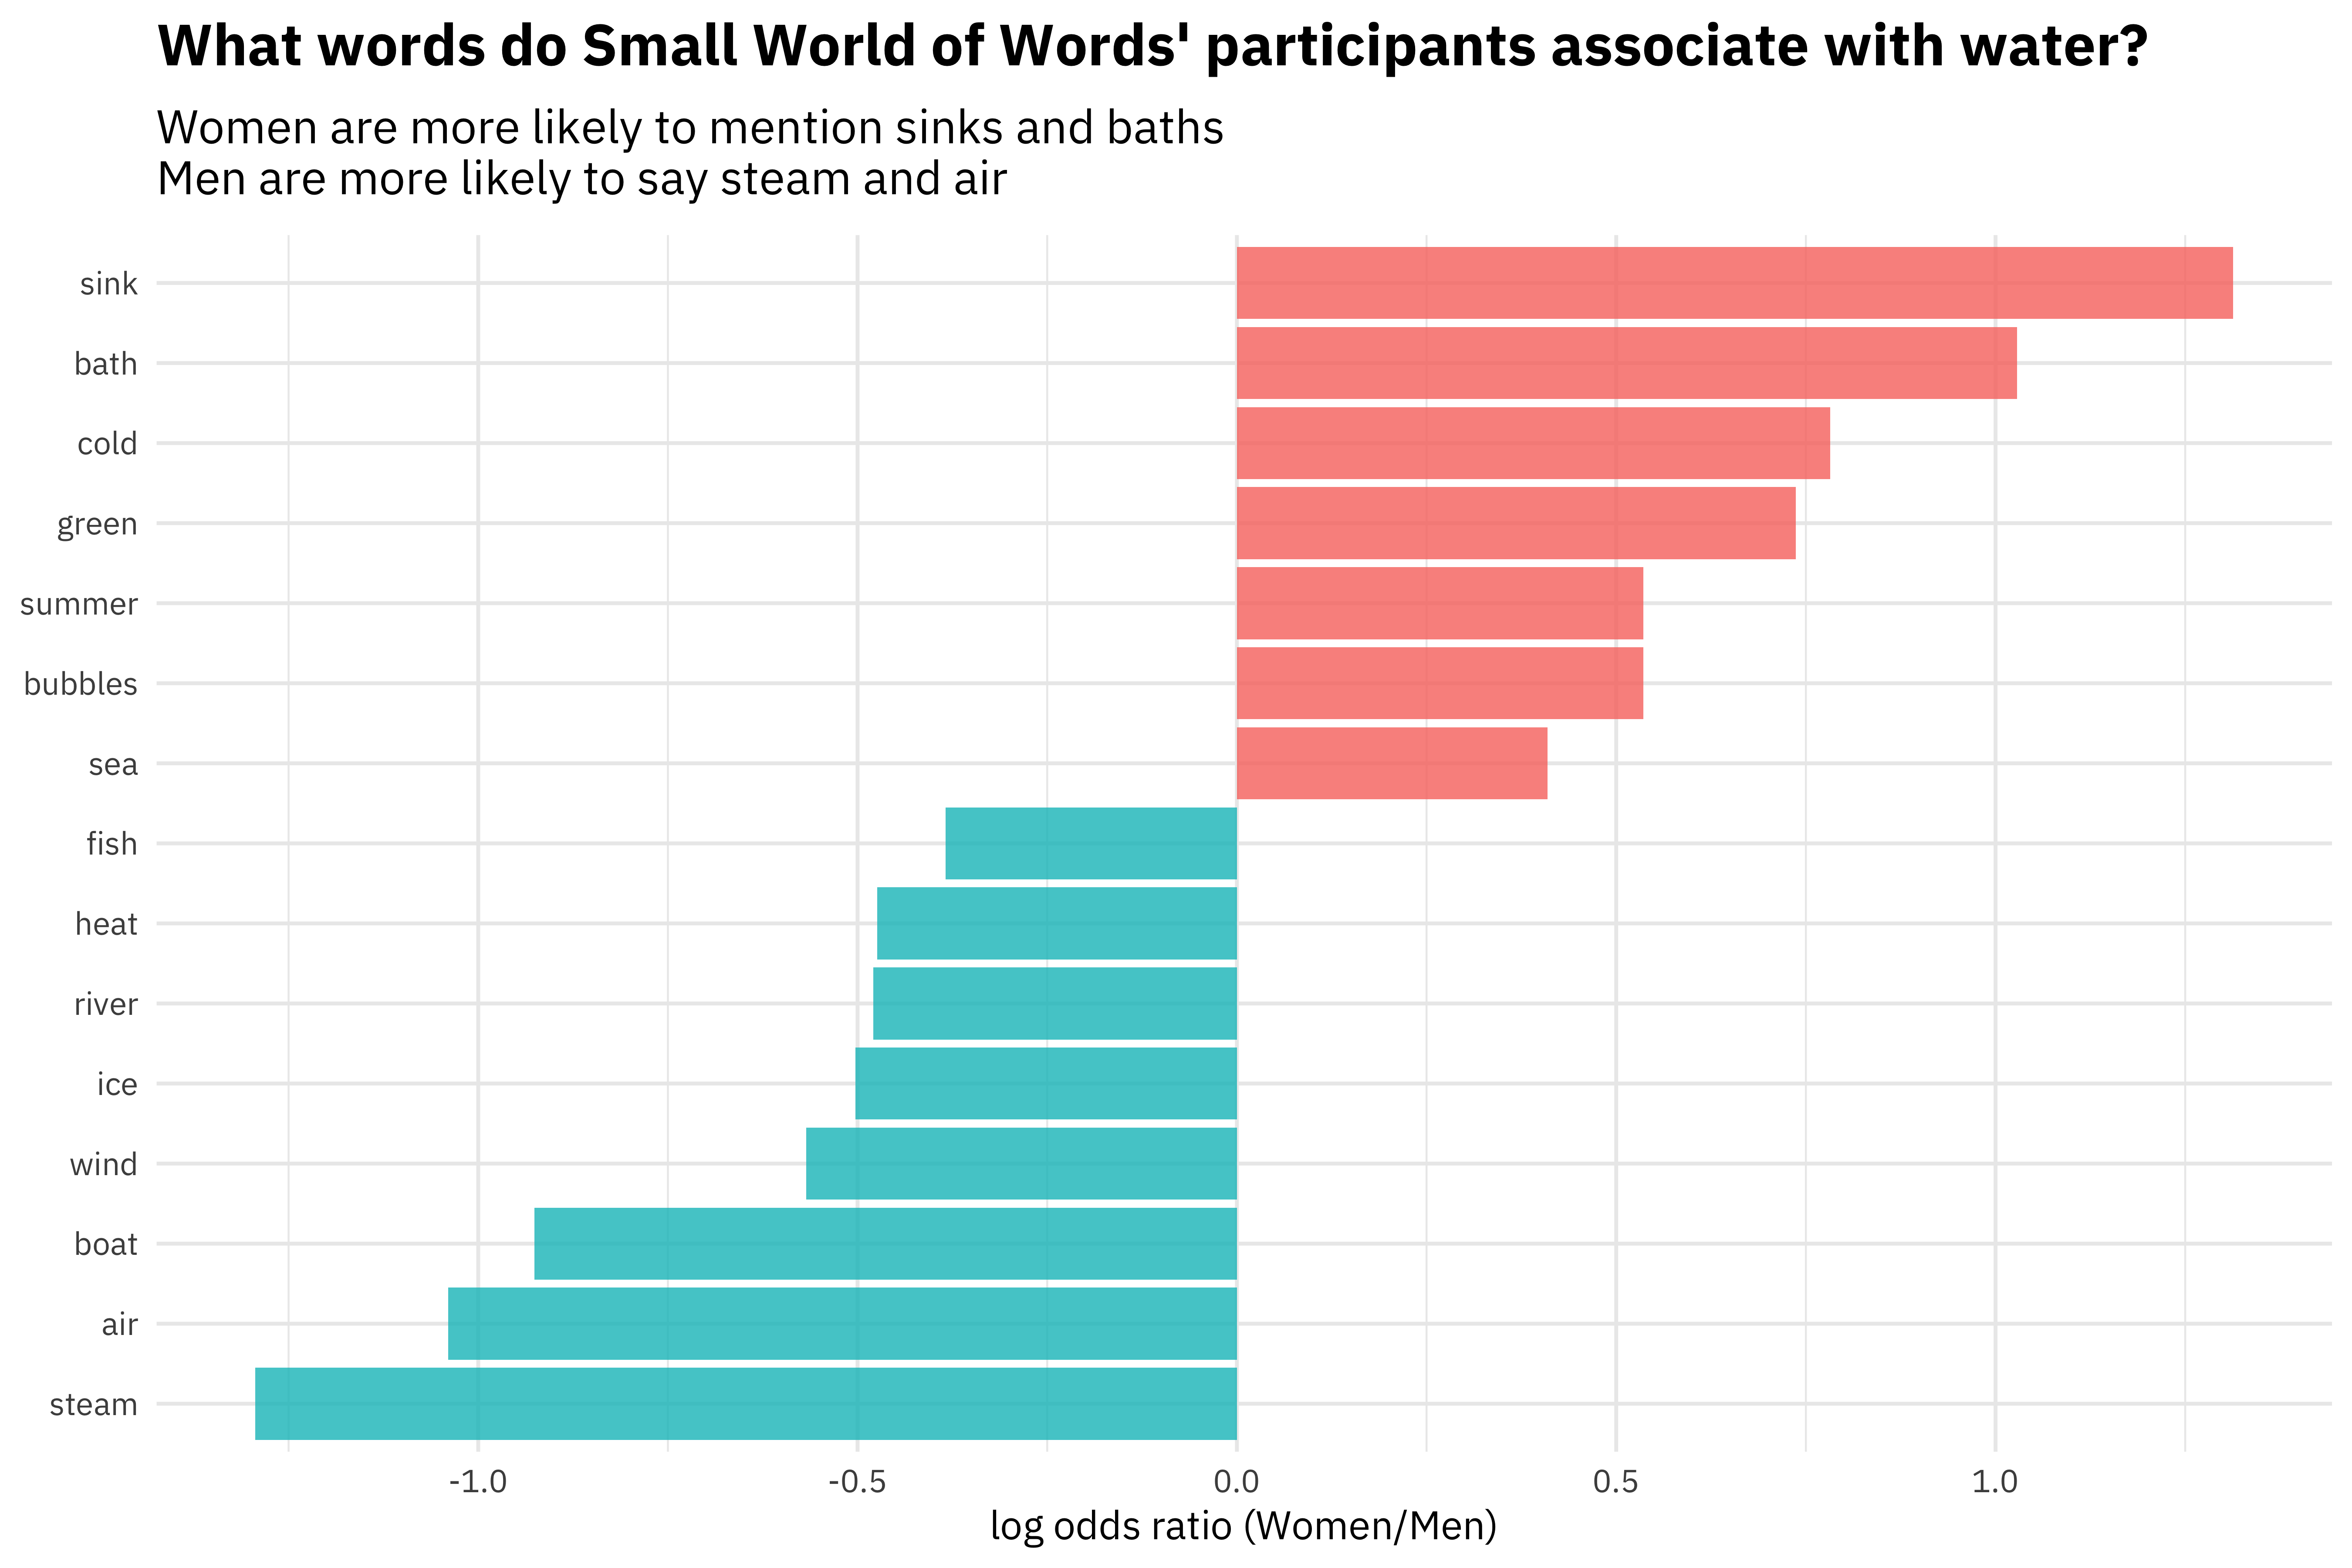 Word associations from the Small World of Words | R-bloggers